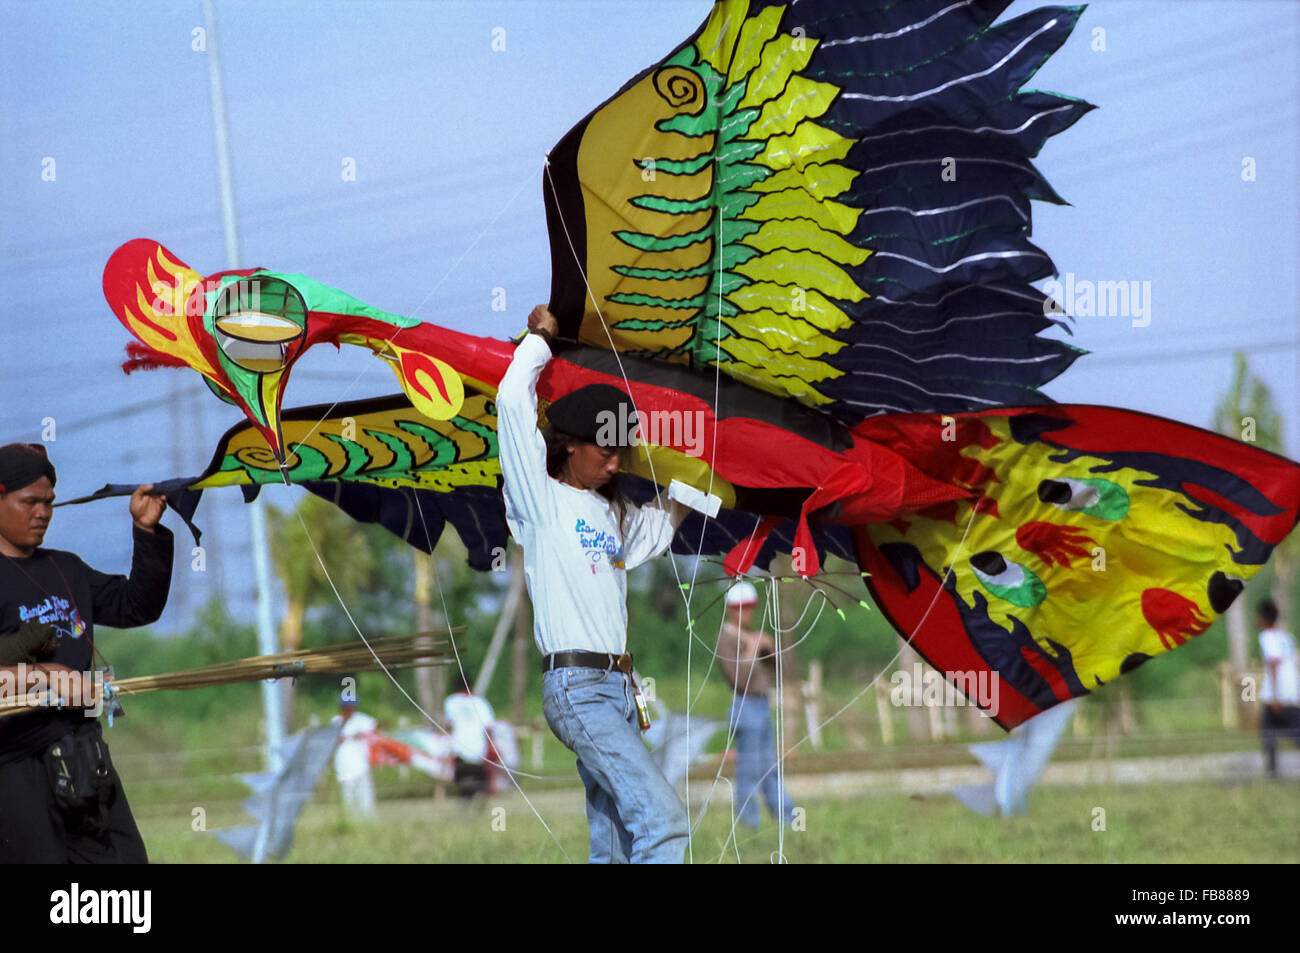 Men carry a large kite in the shape of bird during the Jakarta International Kite Festival at Carnival Beach, Ancol, North Jakarta, July 09-11, 2004. Stock Photo